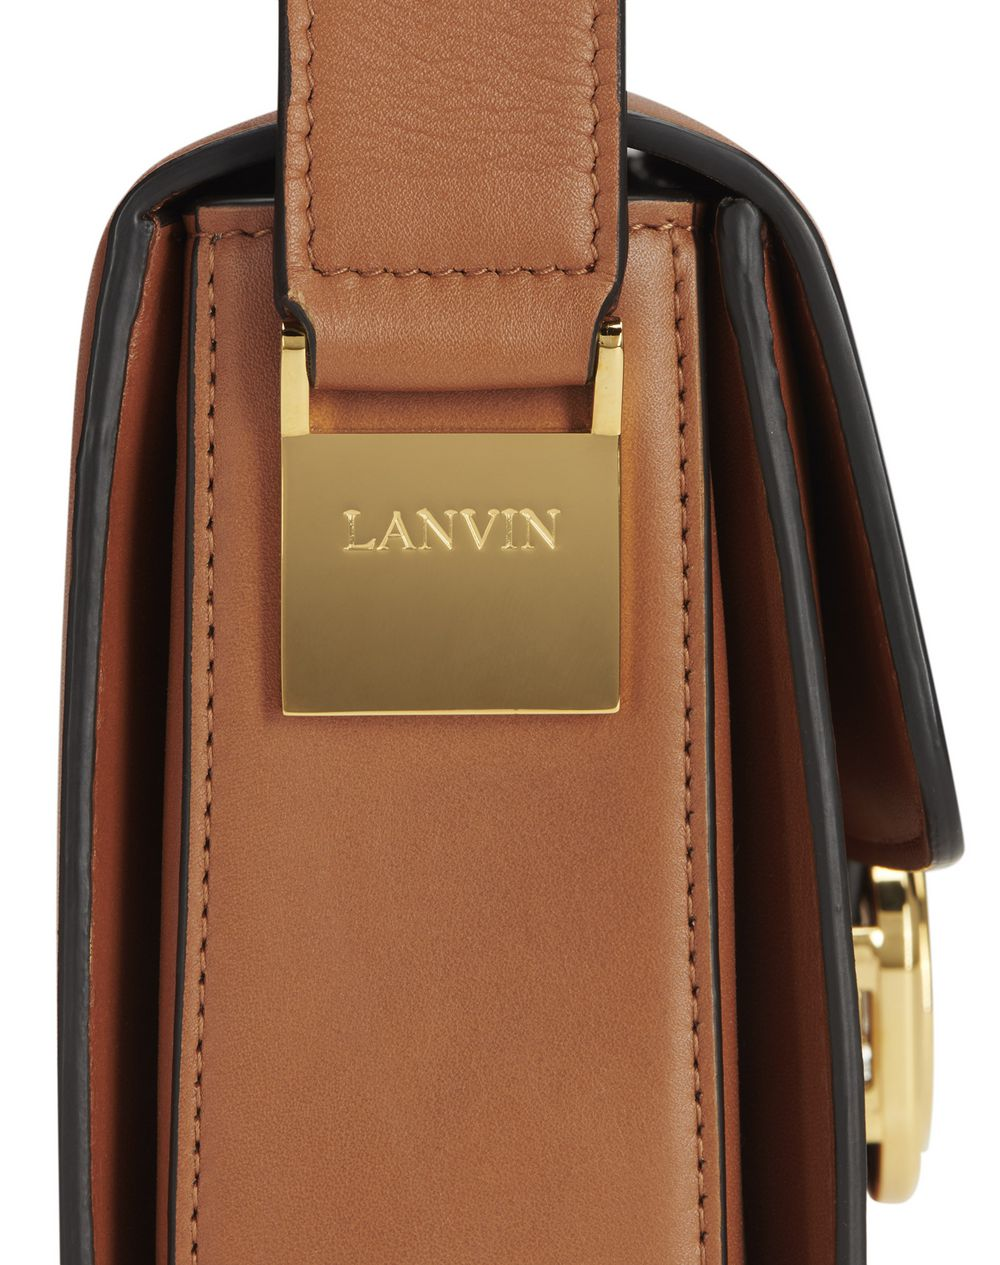 SWAN BOX BAG MM - Lanvin